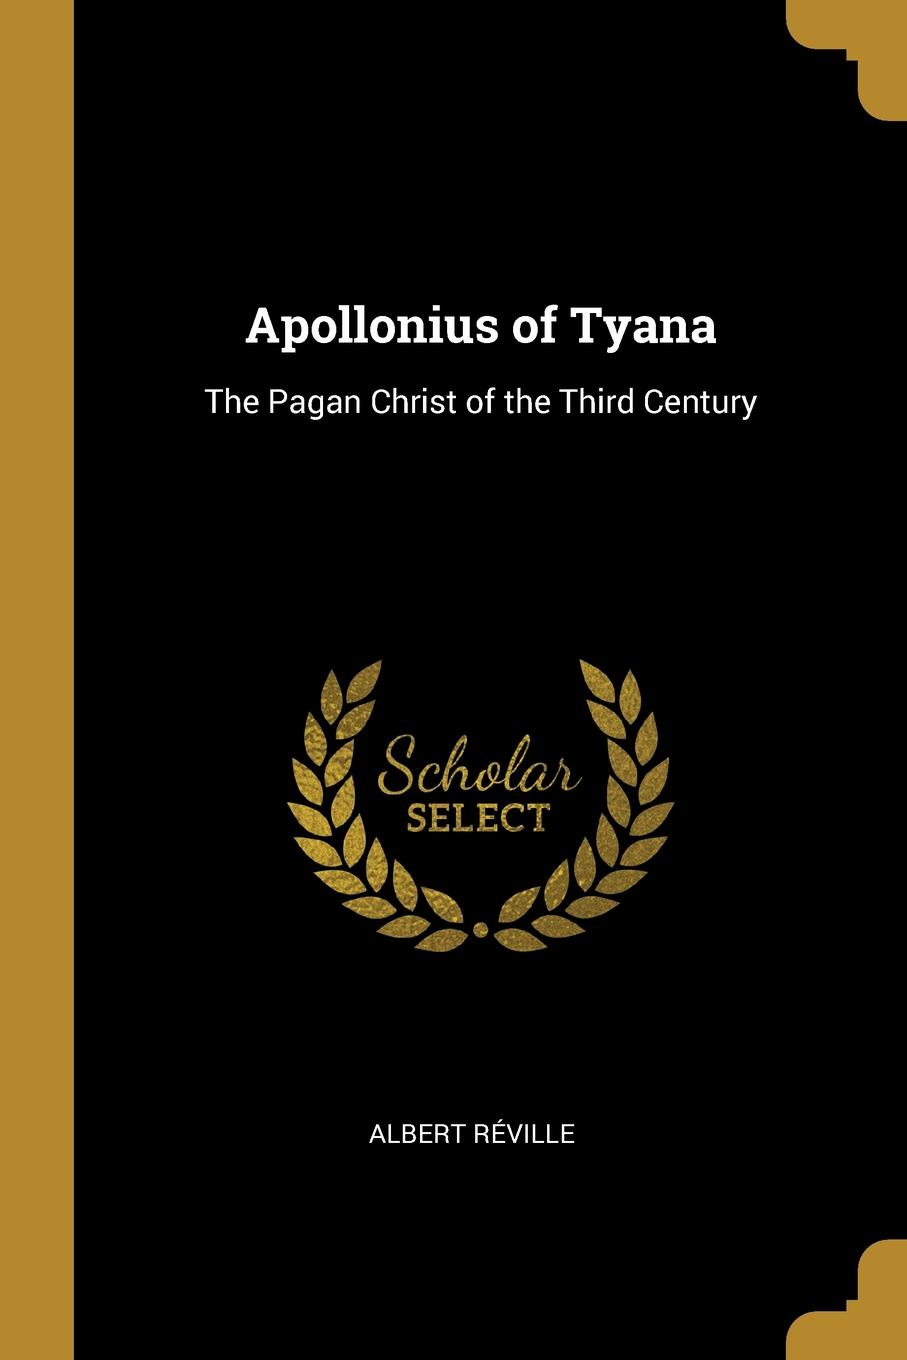 Apollonius of Tyana. The Pagan Christ of the Third Century